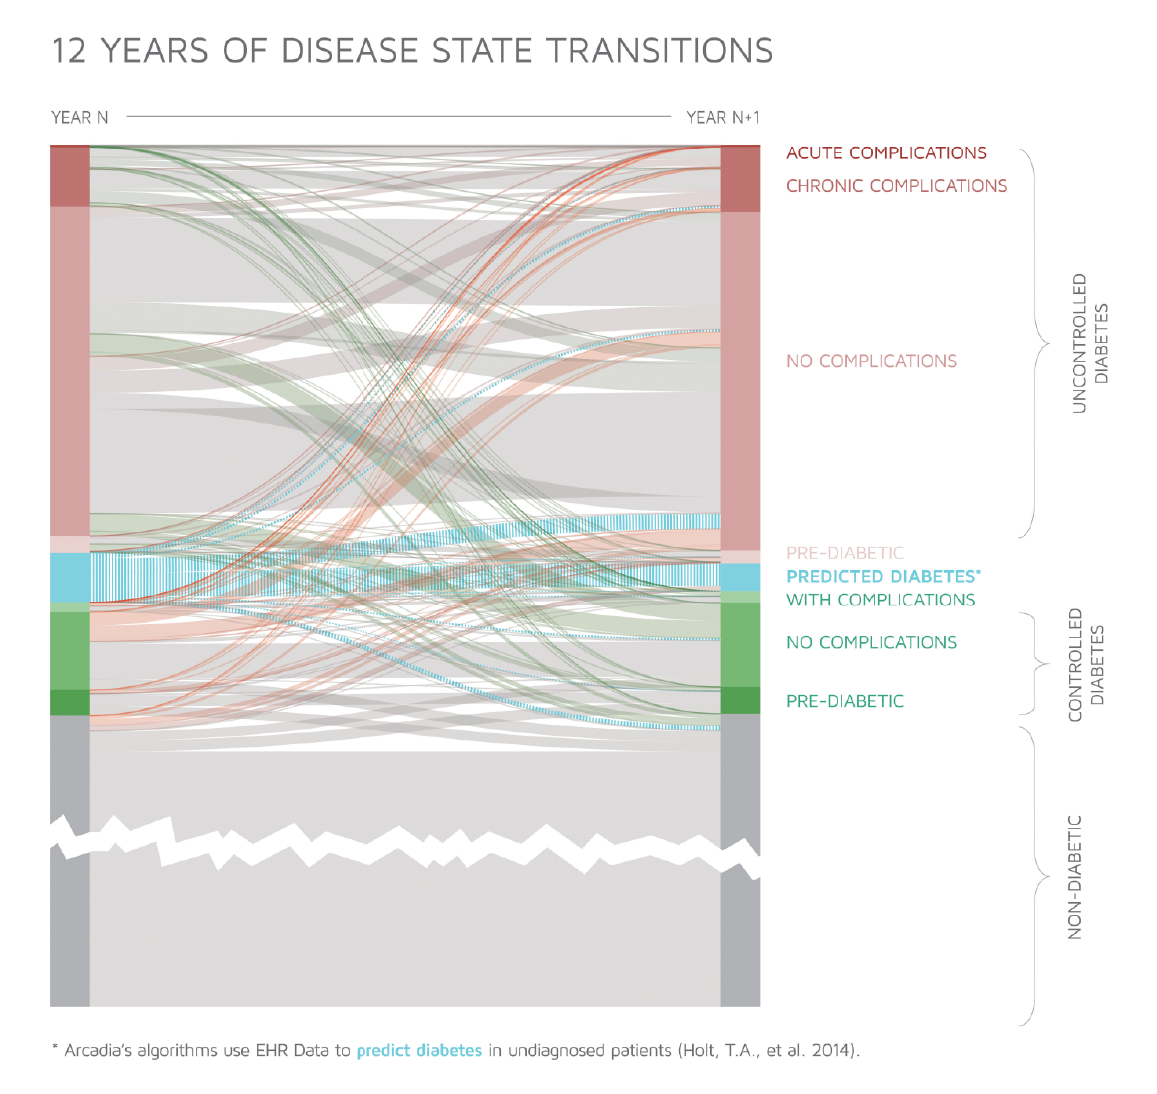 12 Years of Transitions Between Diabetes Condition States